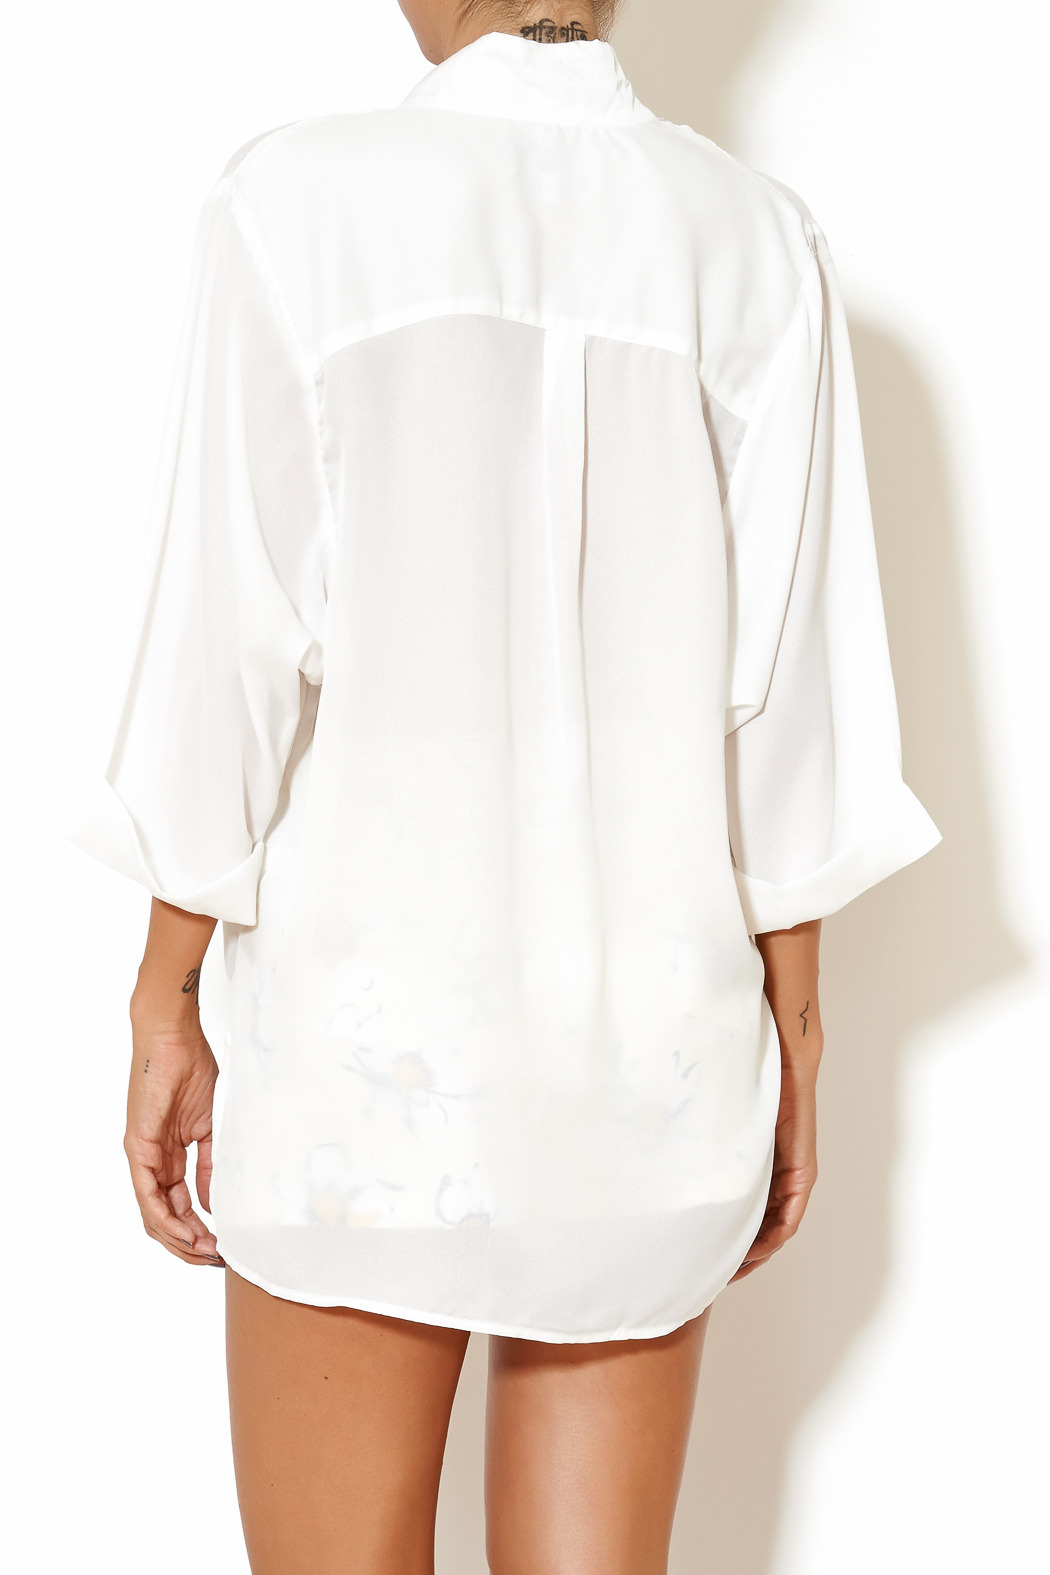 Madison Square Clothing Charlotte Blouse - Back Cropped Image